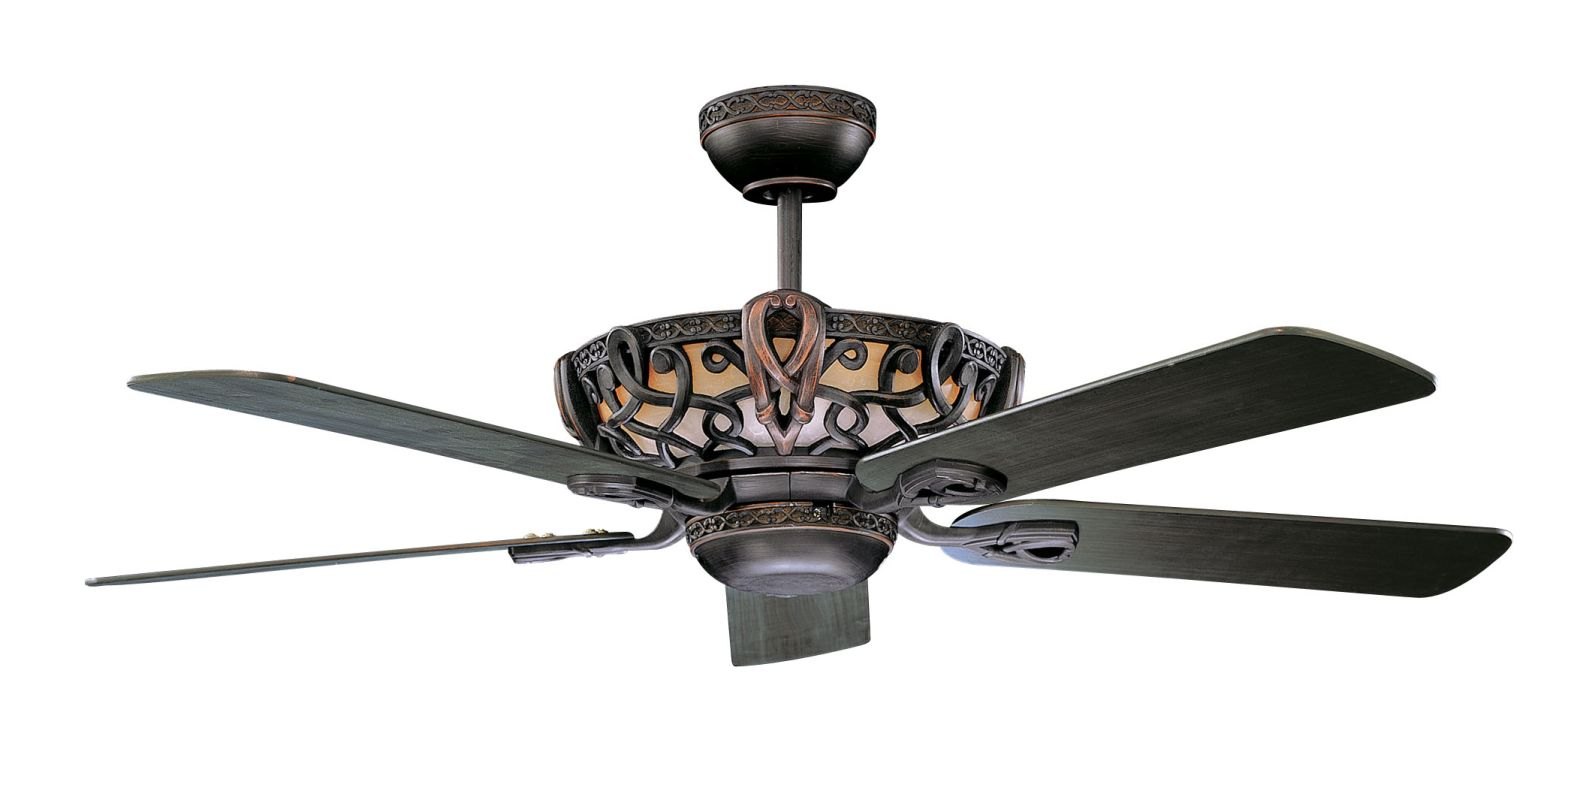 "Concord 52AC5 52"" 5 Blade Ceiling Fan with Blades from the Aracruz"